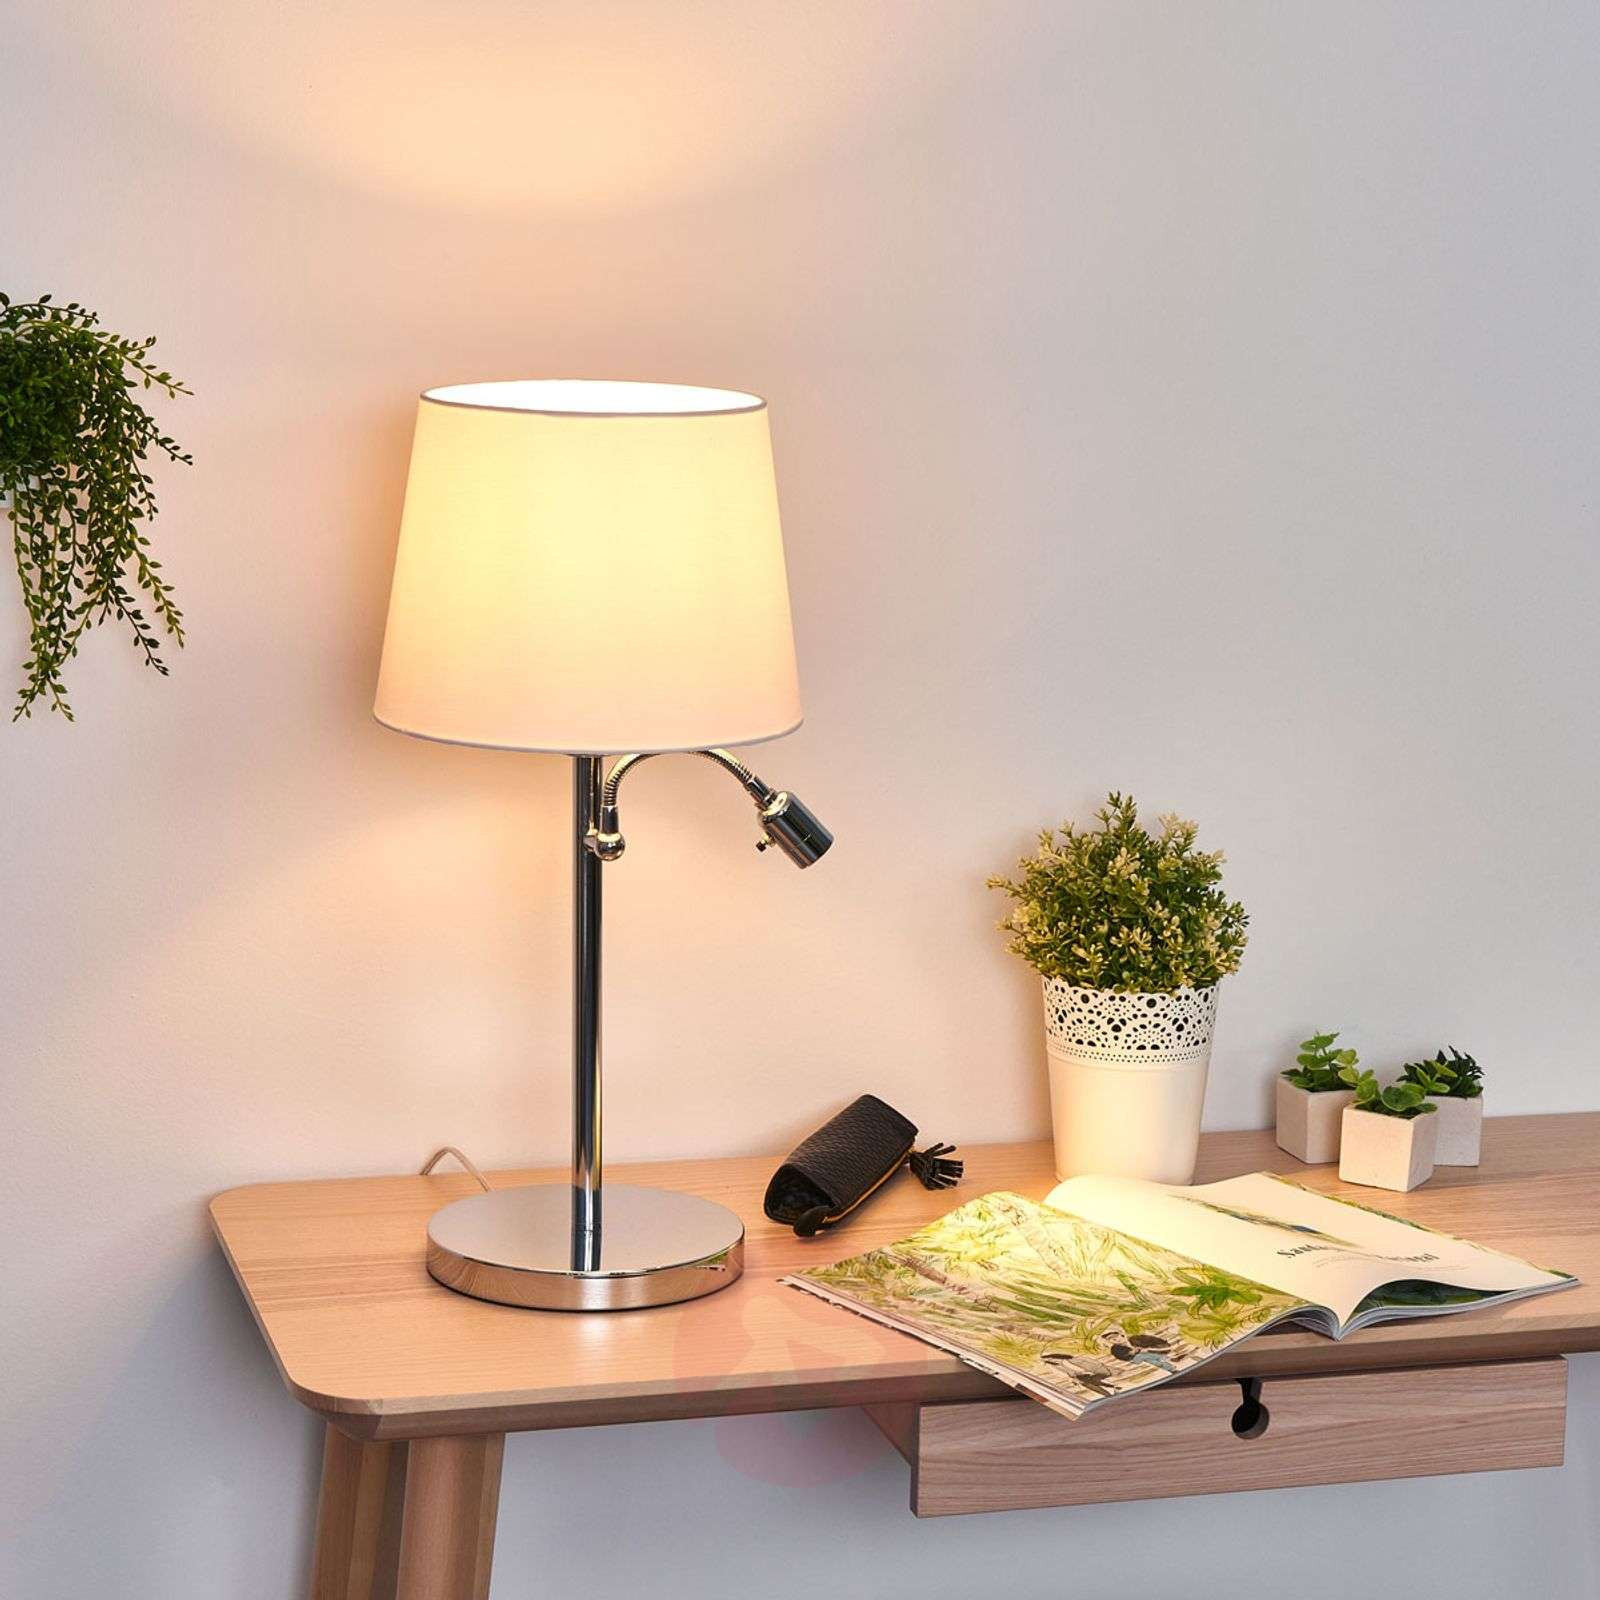 Lavo table lamp with LED reading light-4580680-01